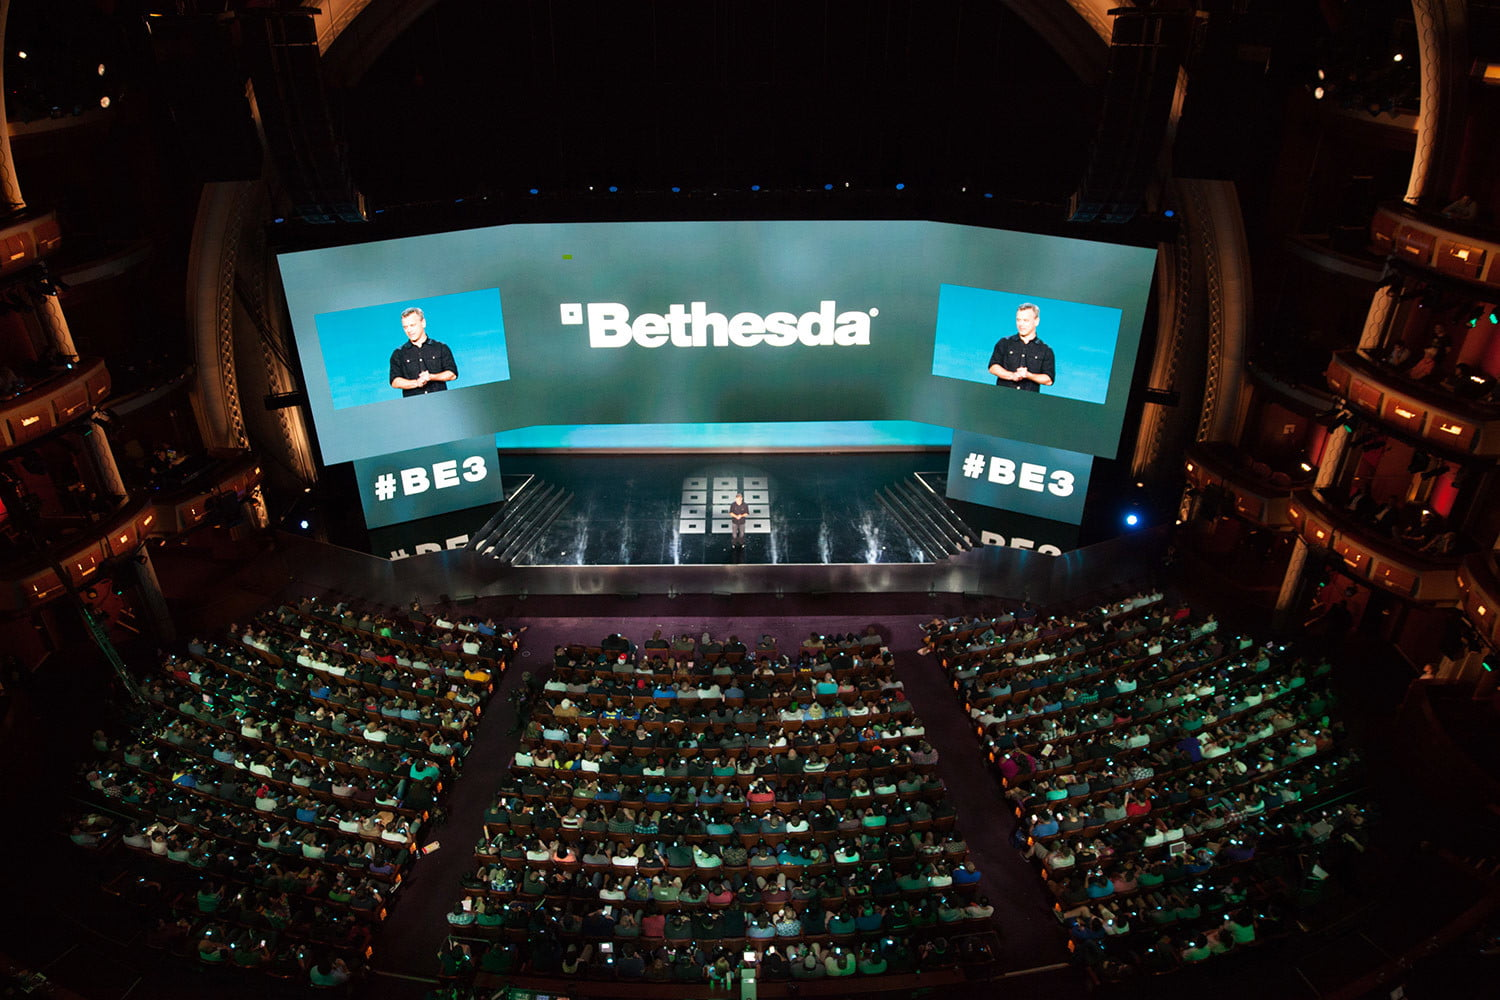 E3 2019 Bethesda Press Conference: How to Watch and Games to